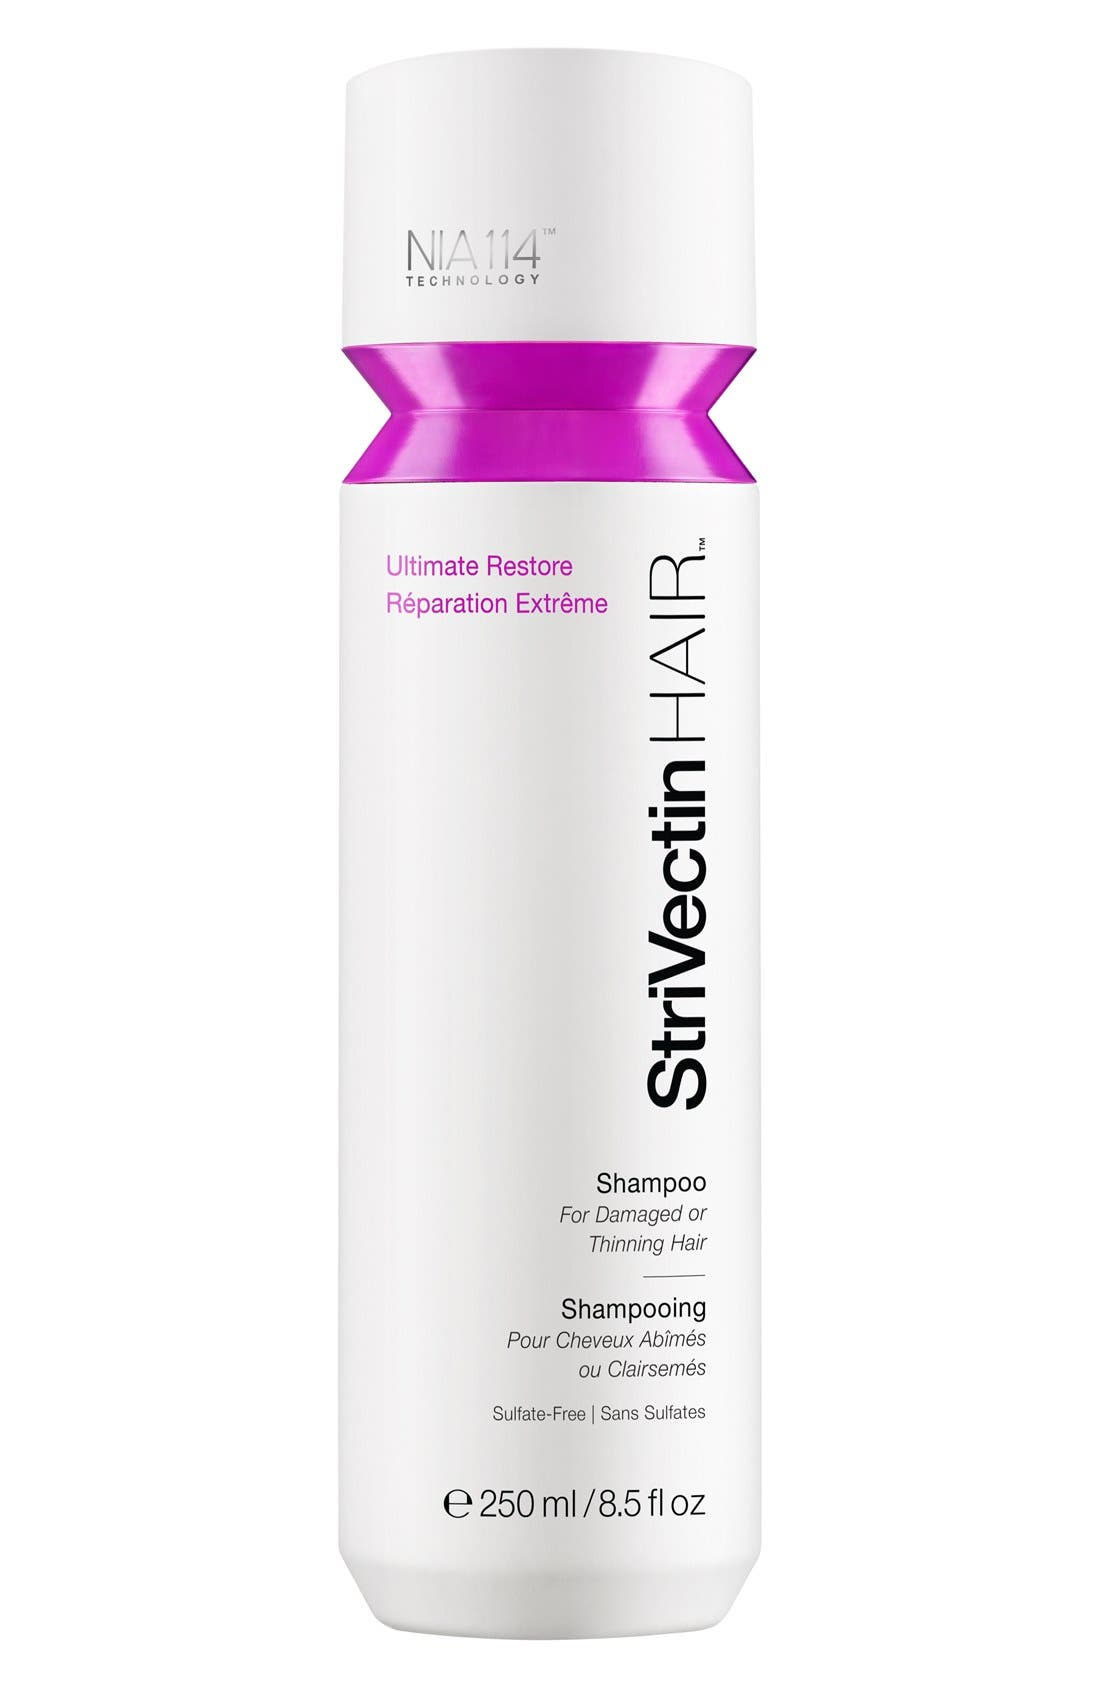 StriVectinHAIR<sup>™</sup> 'Ultimate Restore' Shampoo for Damaged or Thinning Hair,                             Alternate thumbnail 2, color,                             000